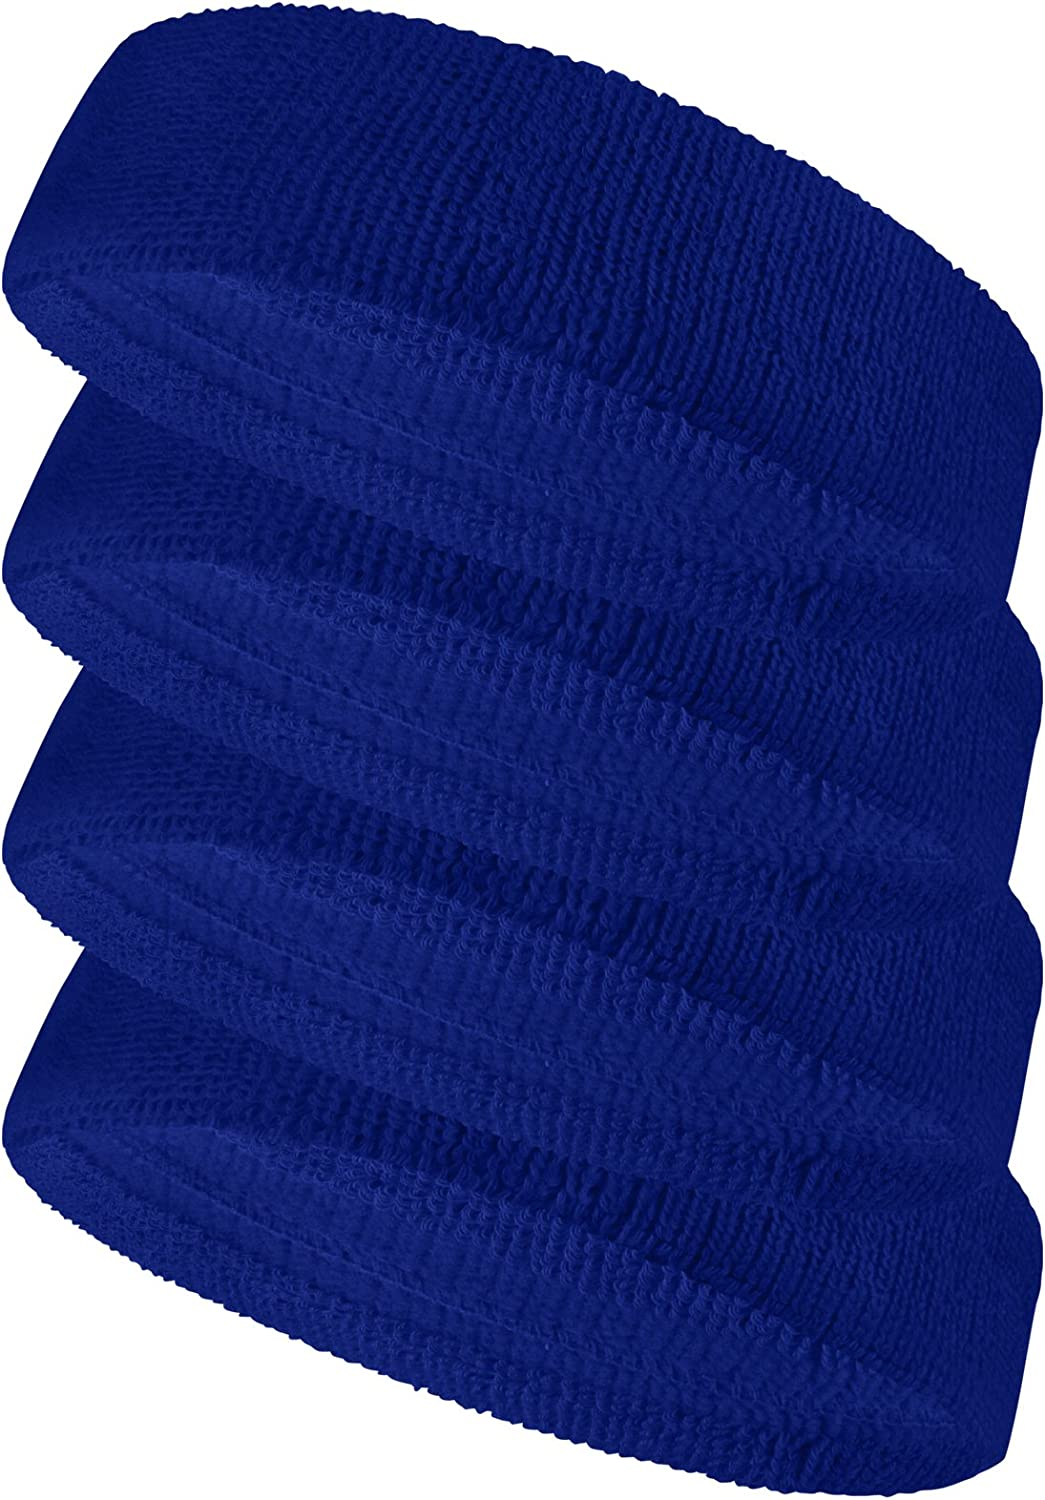 Soccer Headbands Wide Comfortable /& Stay On Sweatbands Bright Durable Lime